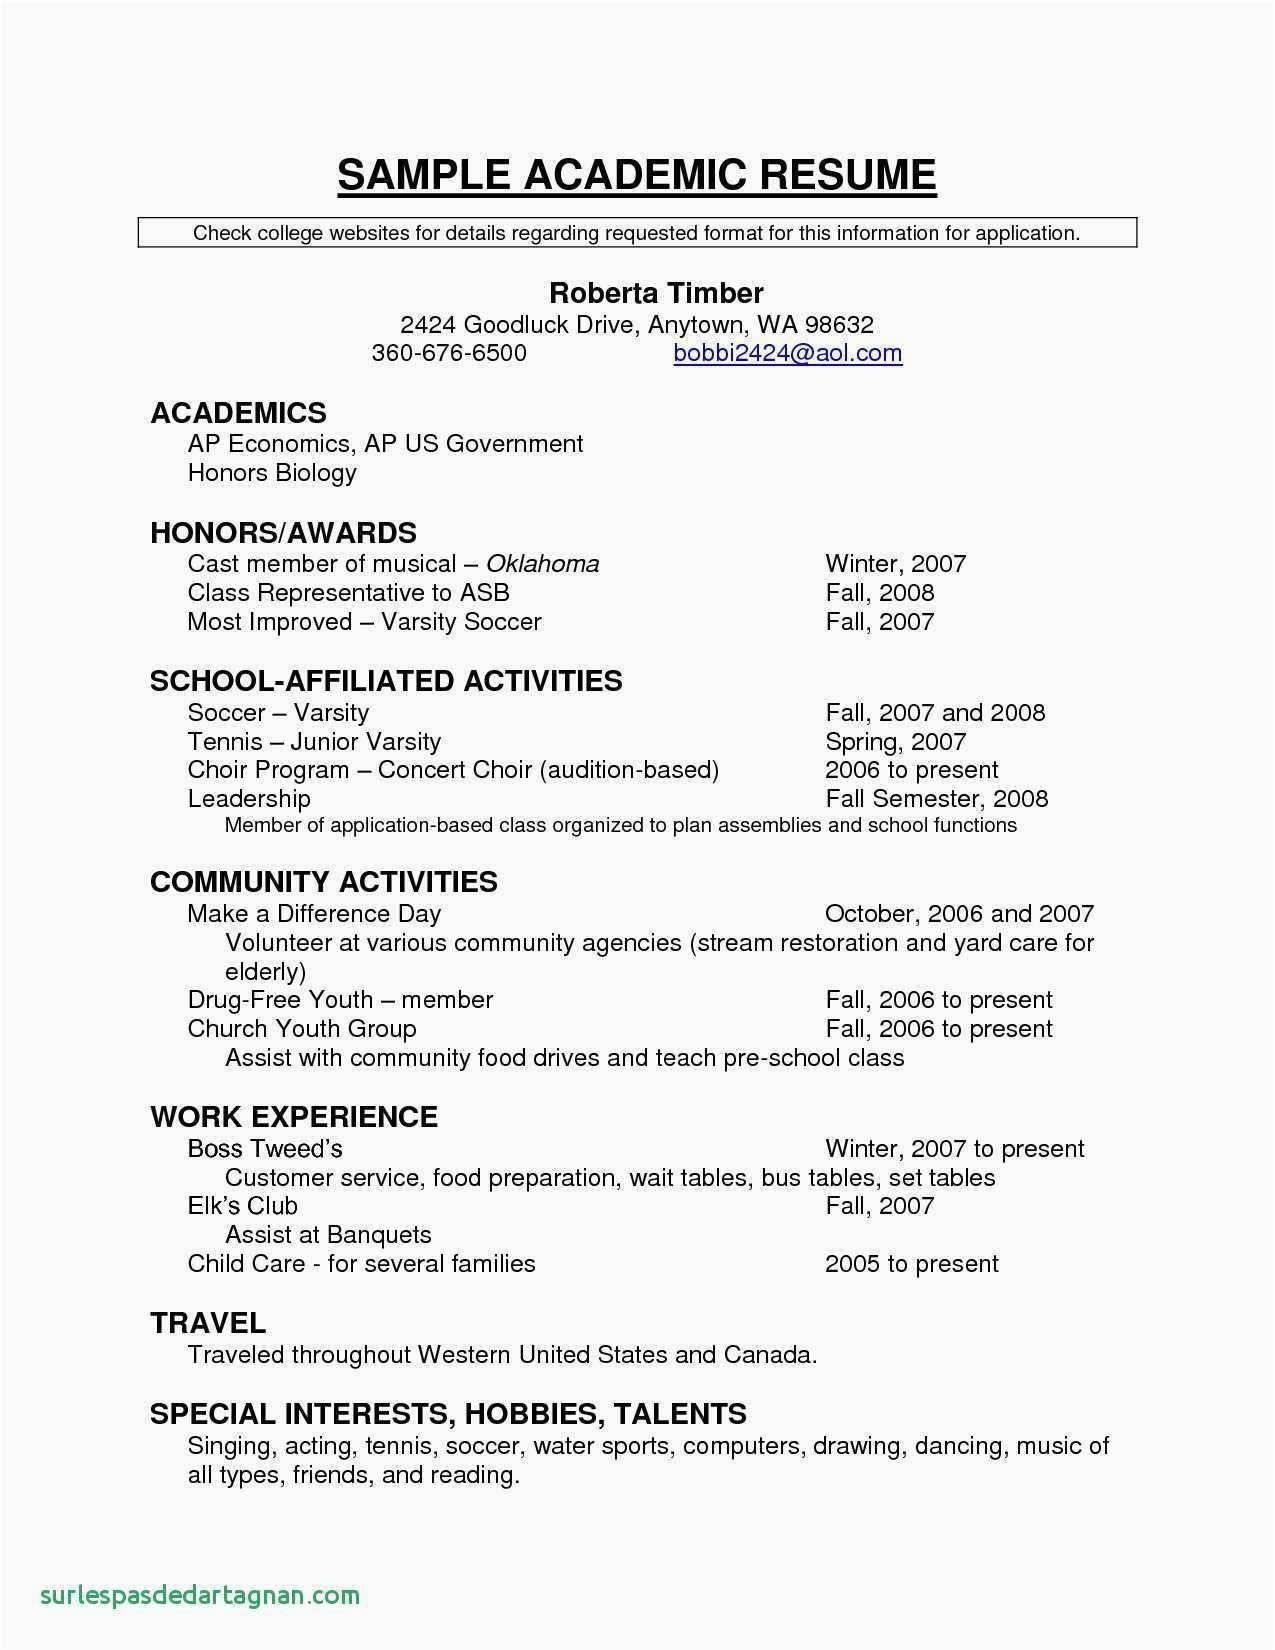 Activities To Put On A Resume Luxury Resume Portfolio Examples Sample Resume For Reading Teacher In 2020 Student Resume Template Resume Examples Good Resume Examples